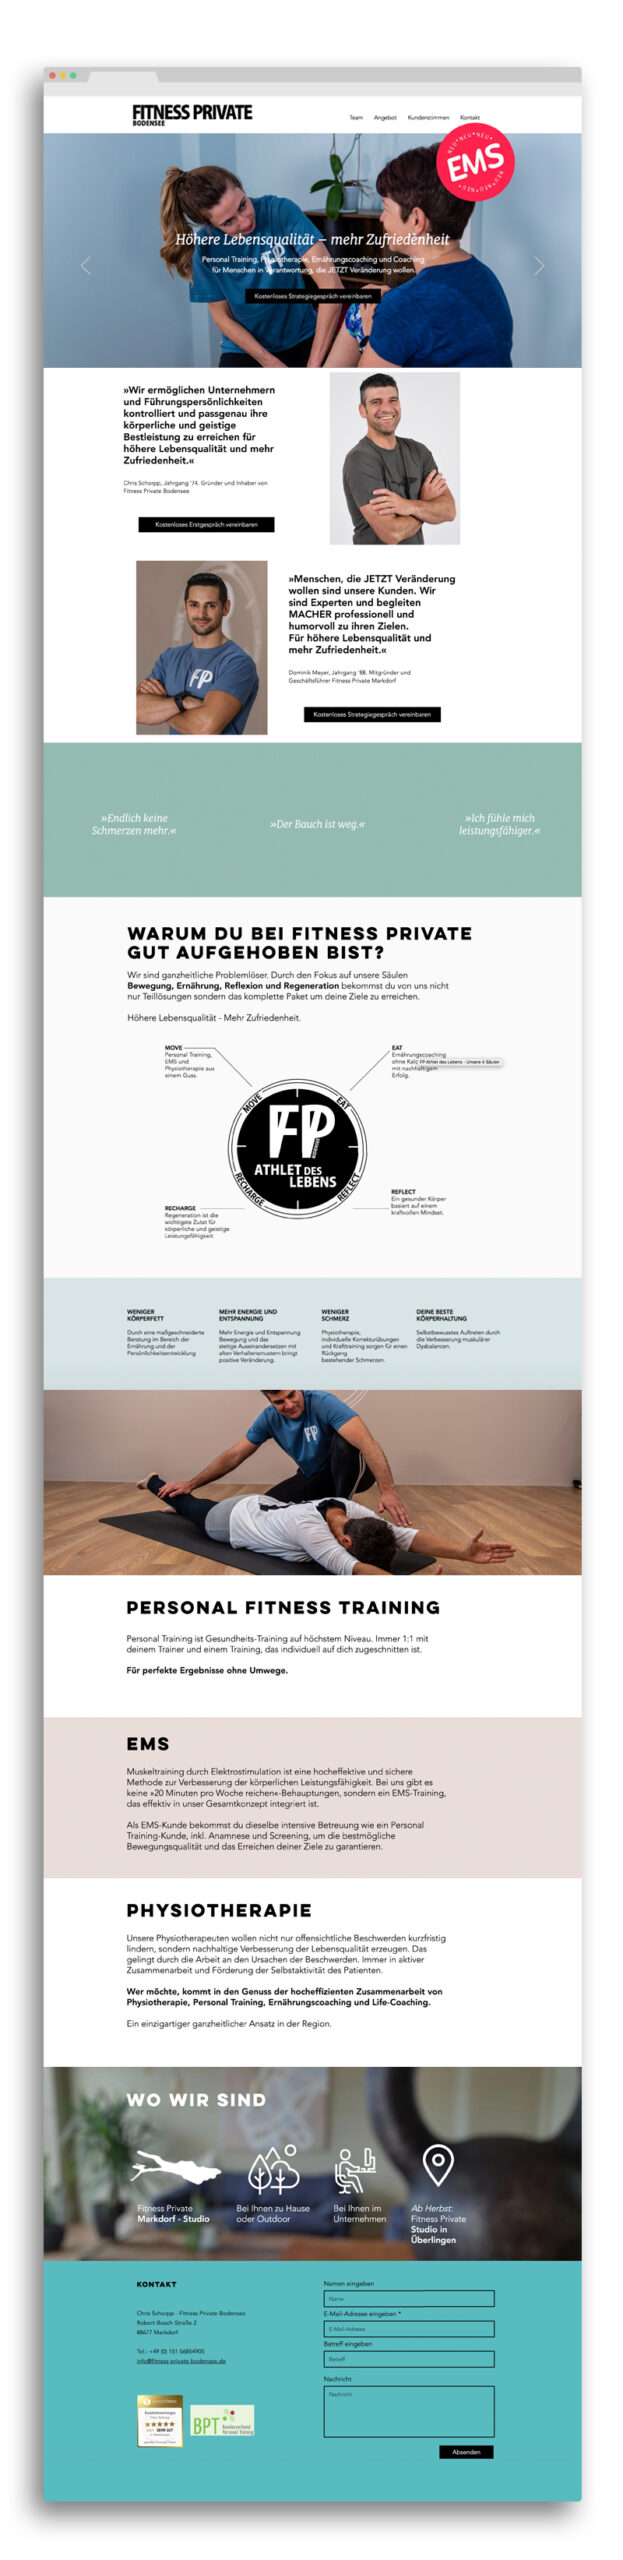 Webdesign Fitness Private Bodensee